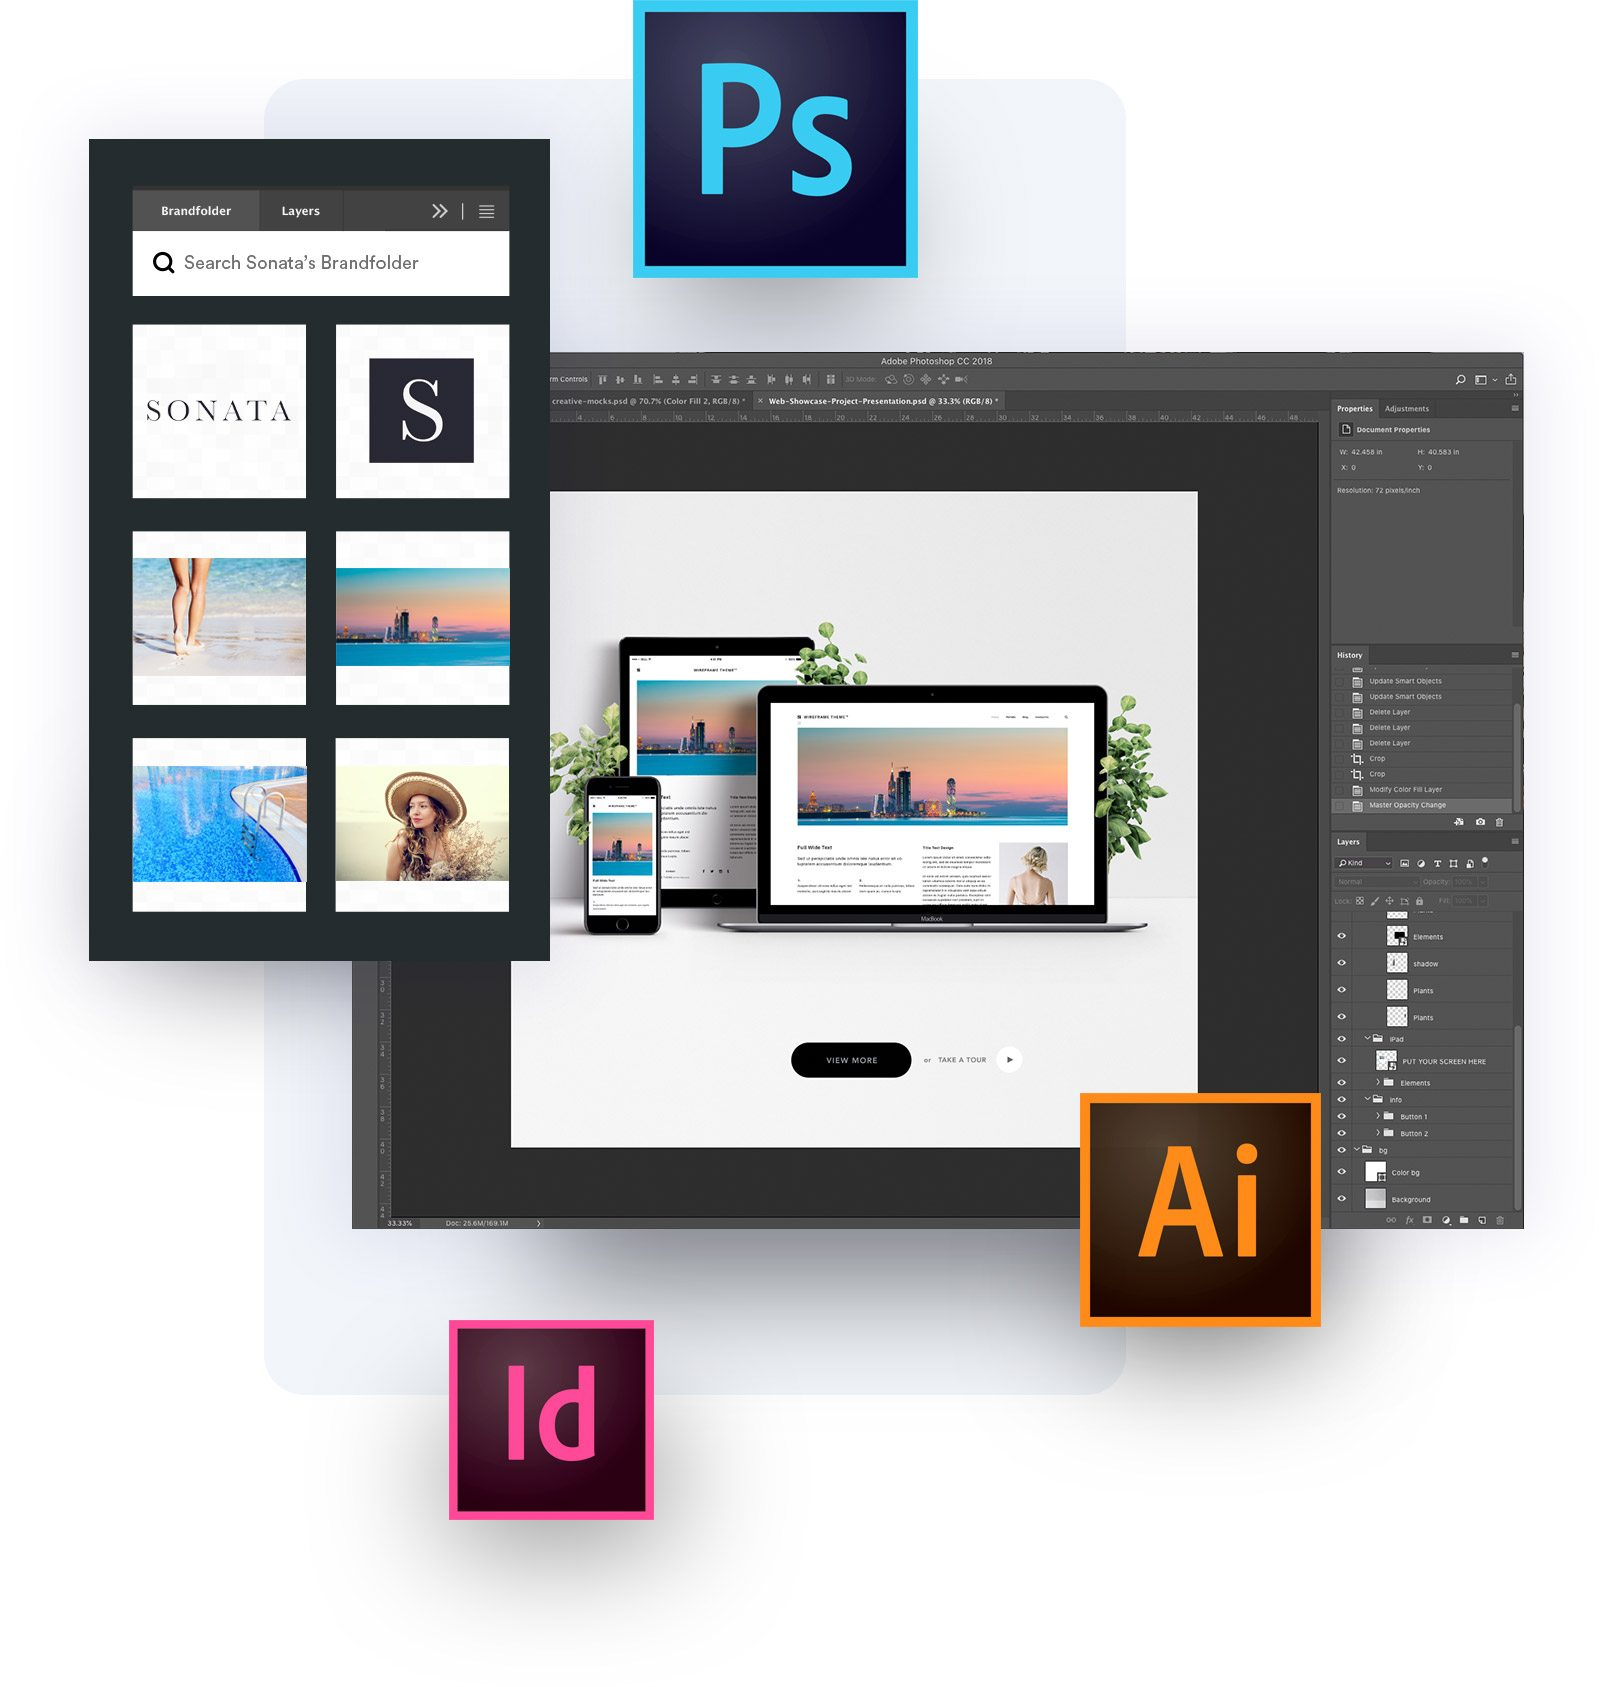 Adobe integration with Photoshop, Illustrator and InDesign